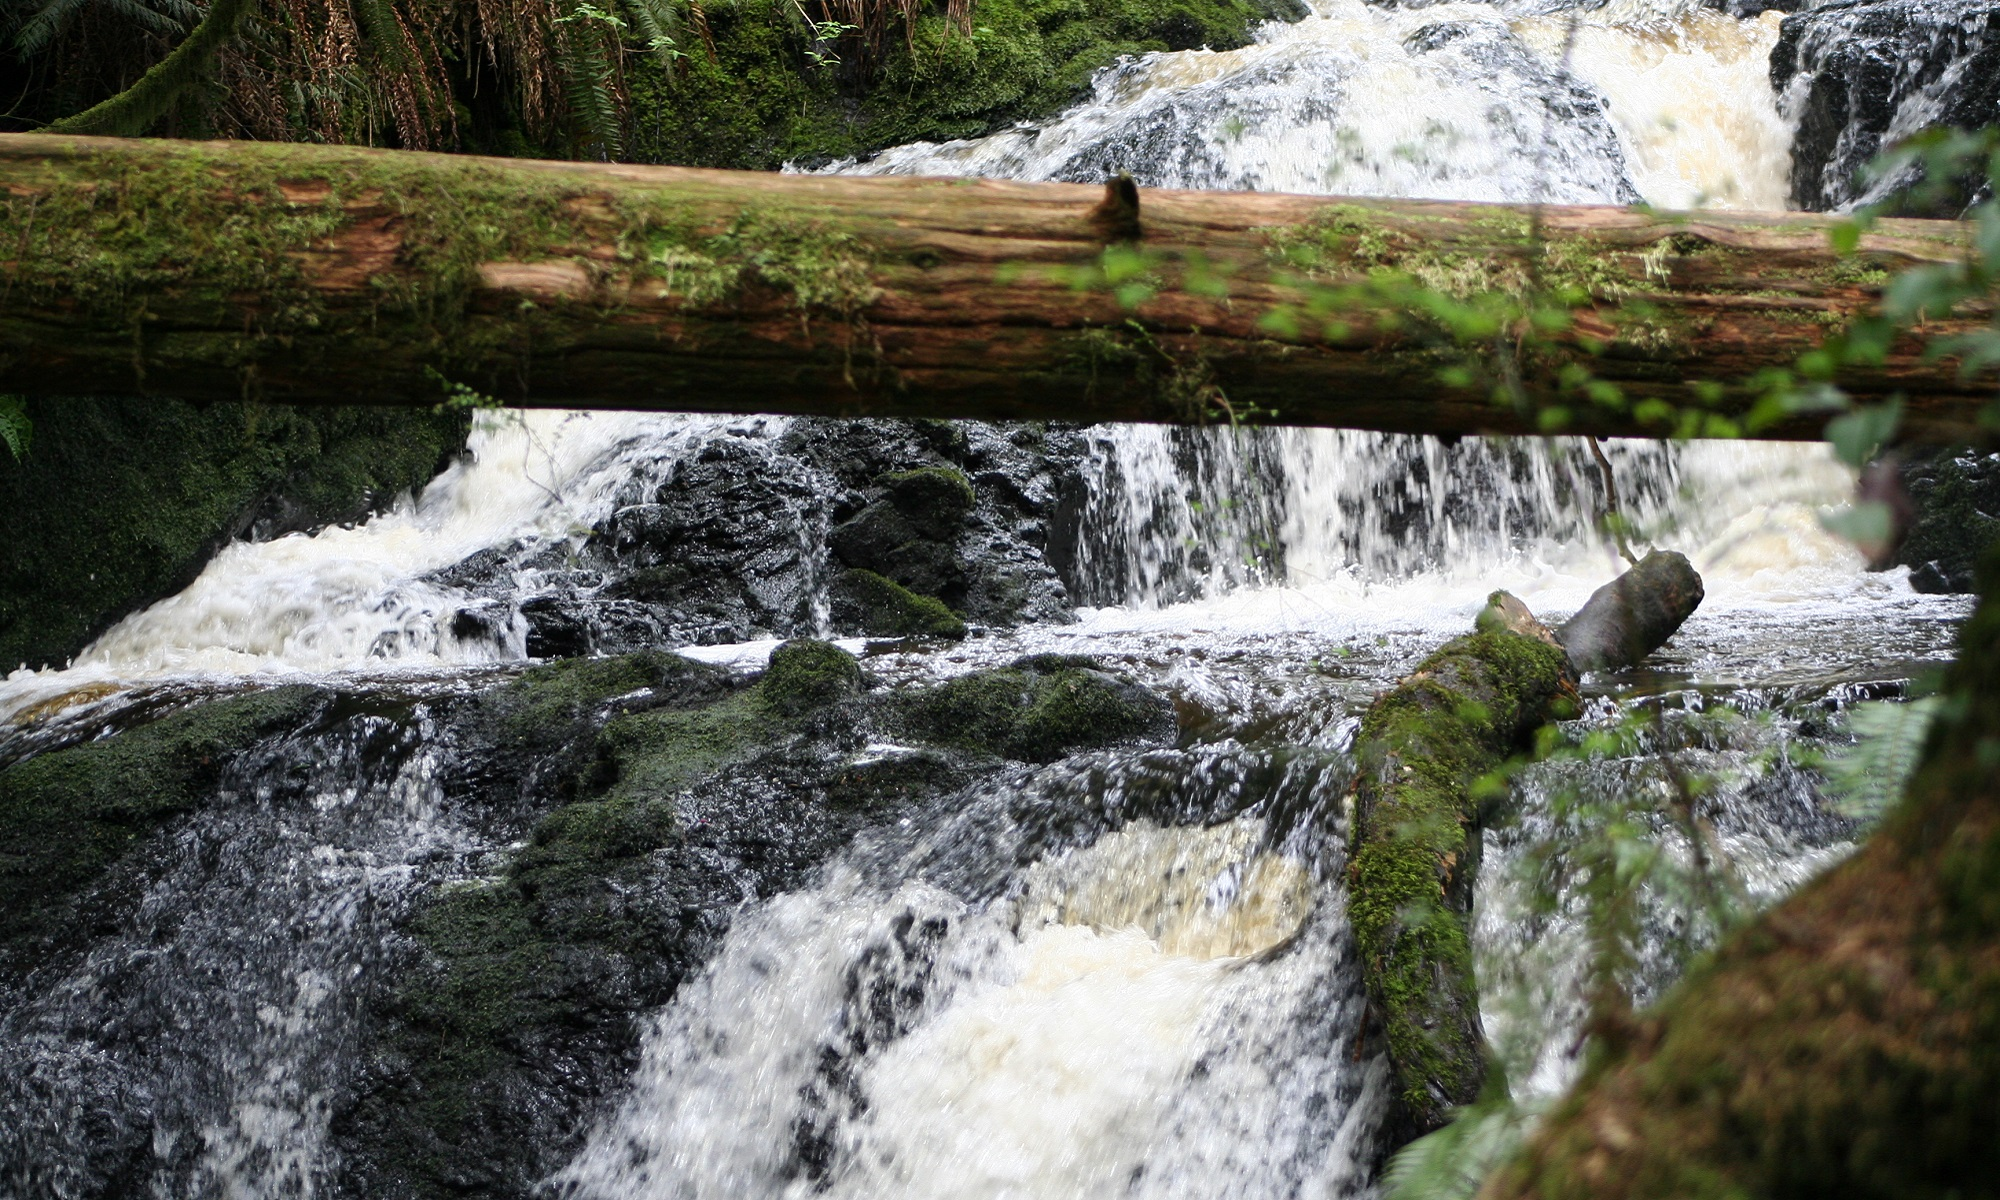 Mountain Stream with Log Across 2015